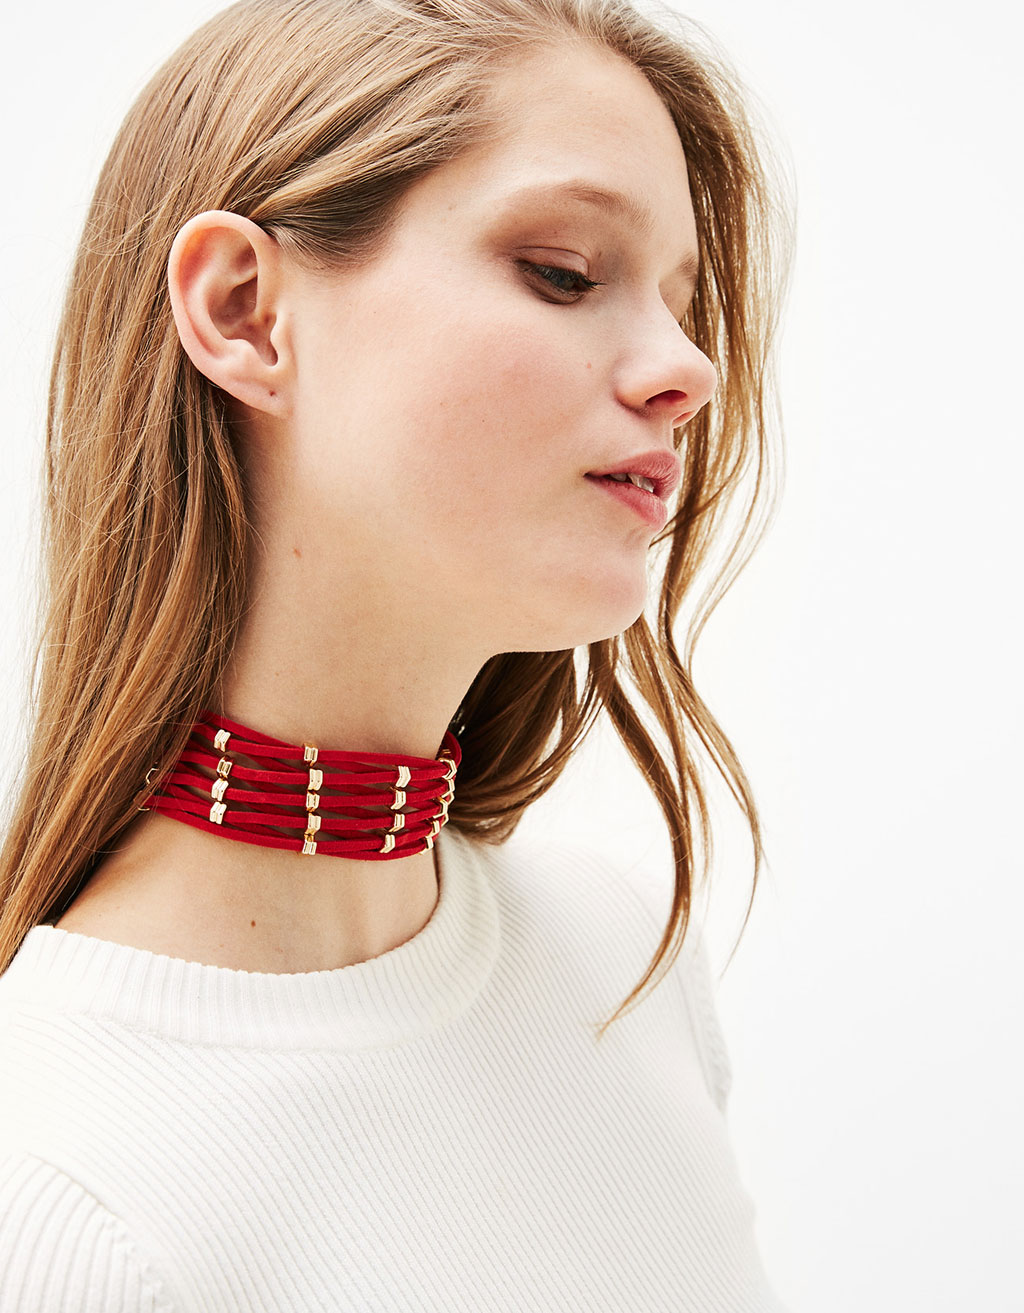 Wide choker with metallic pieces